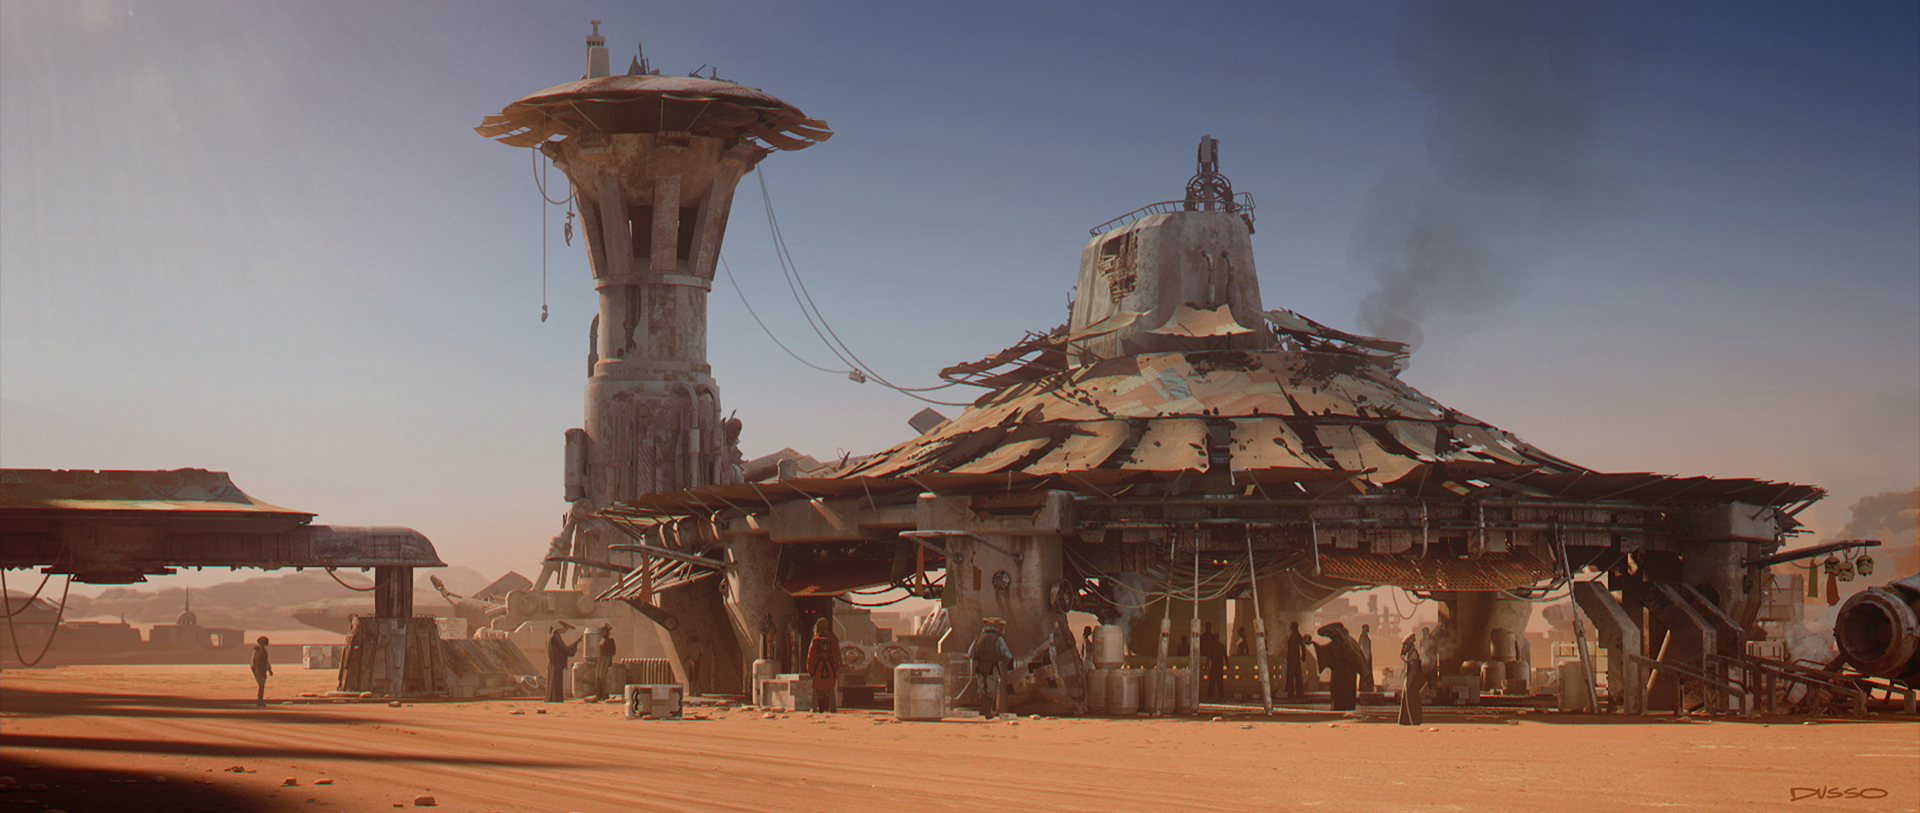 Newly Released Concept Art for Star Wars: The Force Awakens